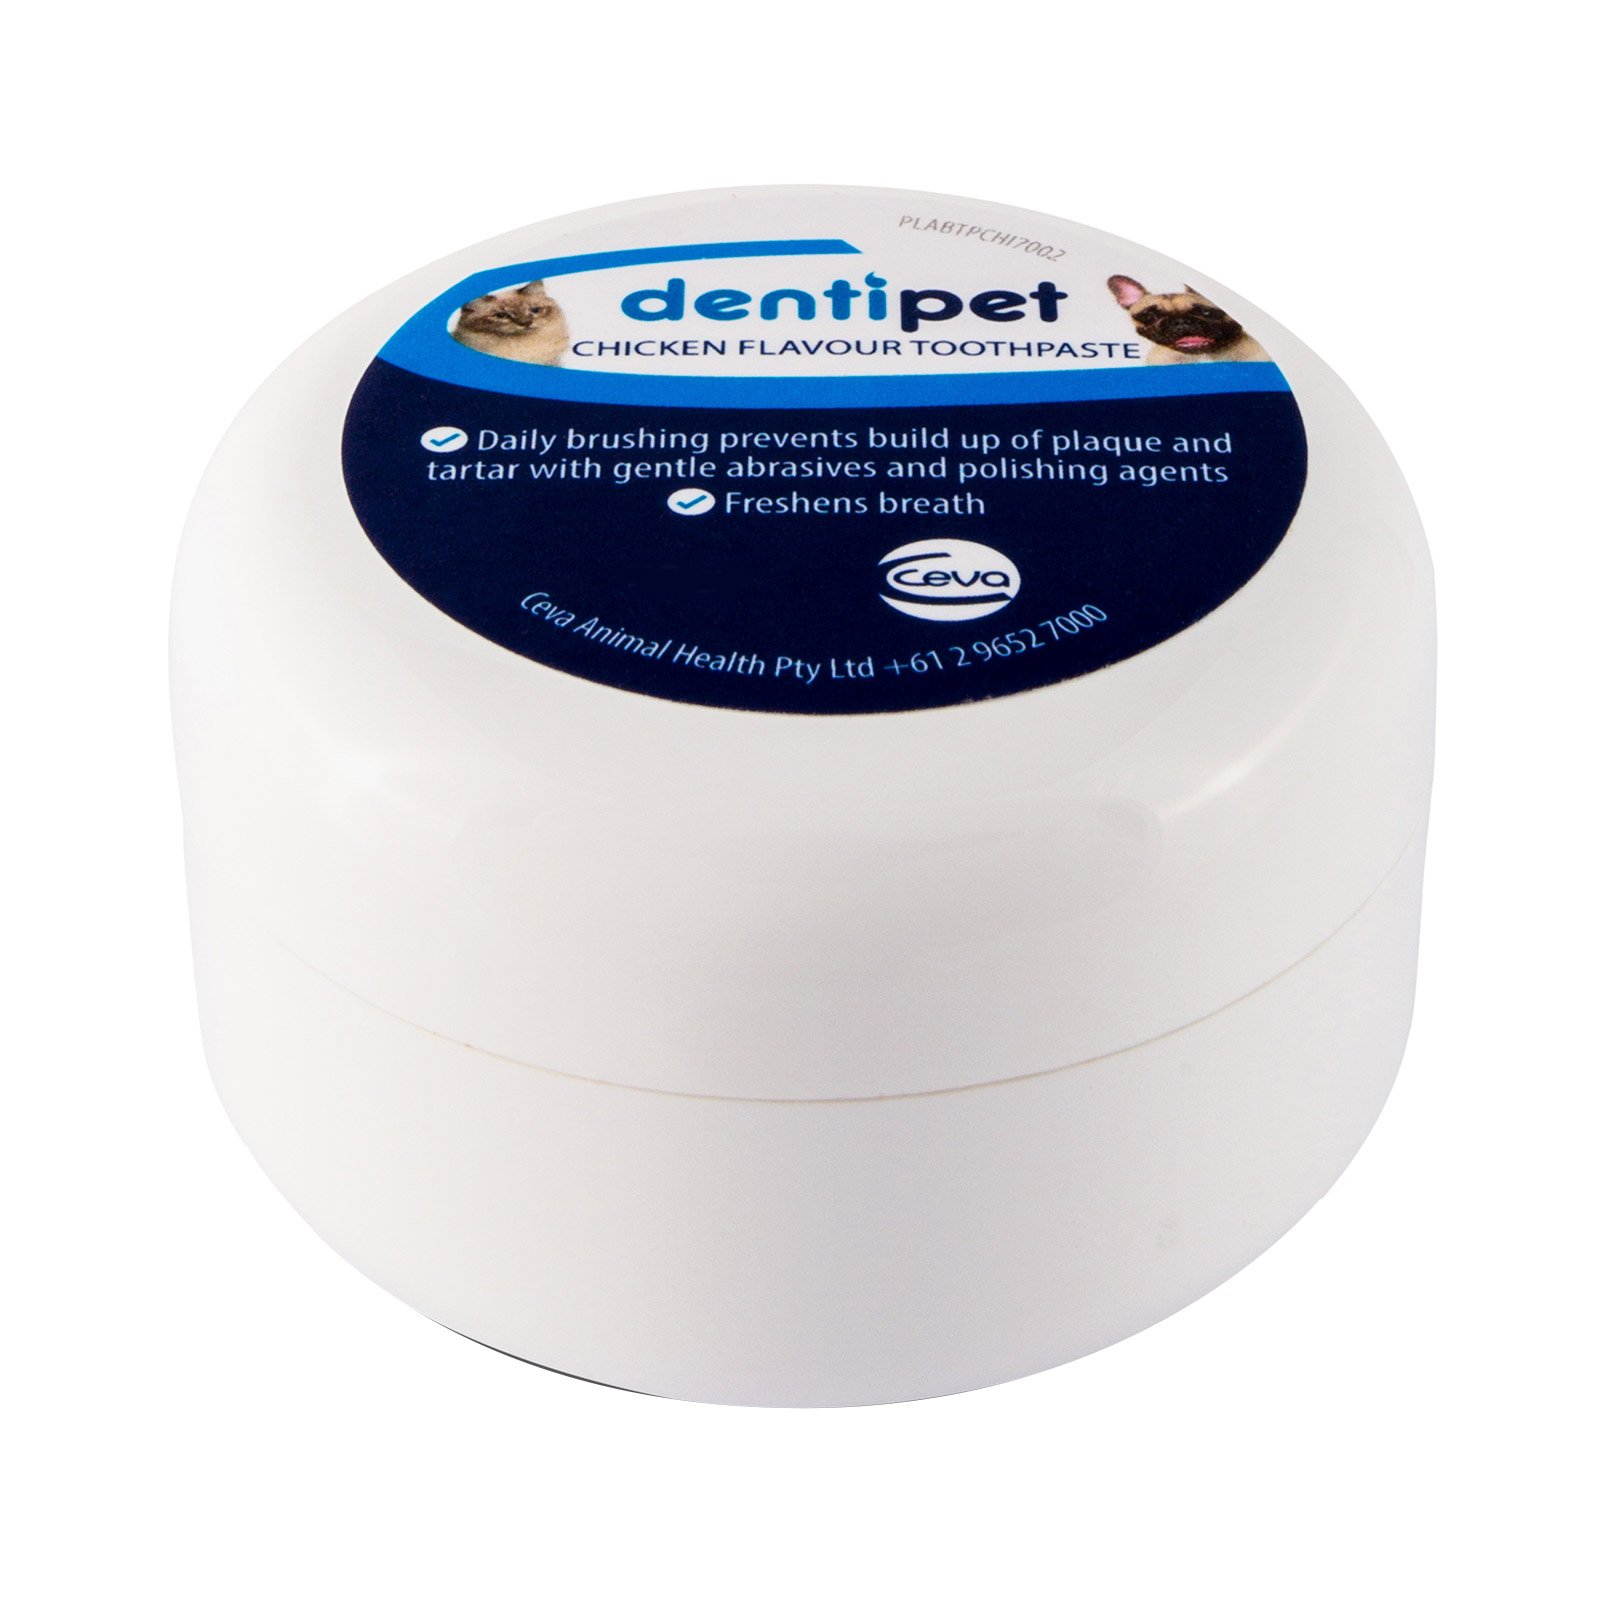 636837914597985023dentipet-toothpaste-dogs-poultry-flavour.jpg